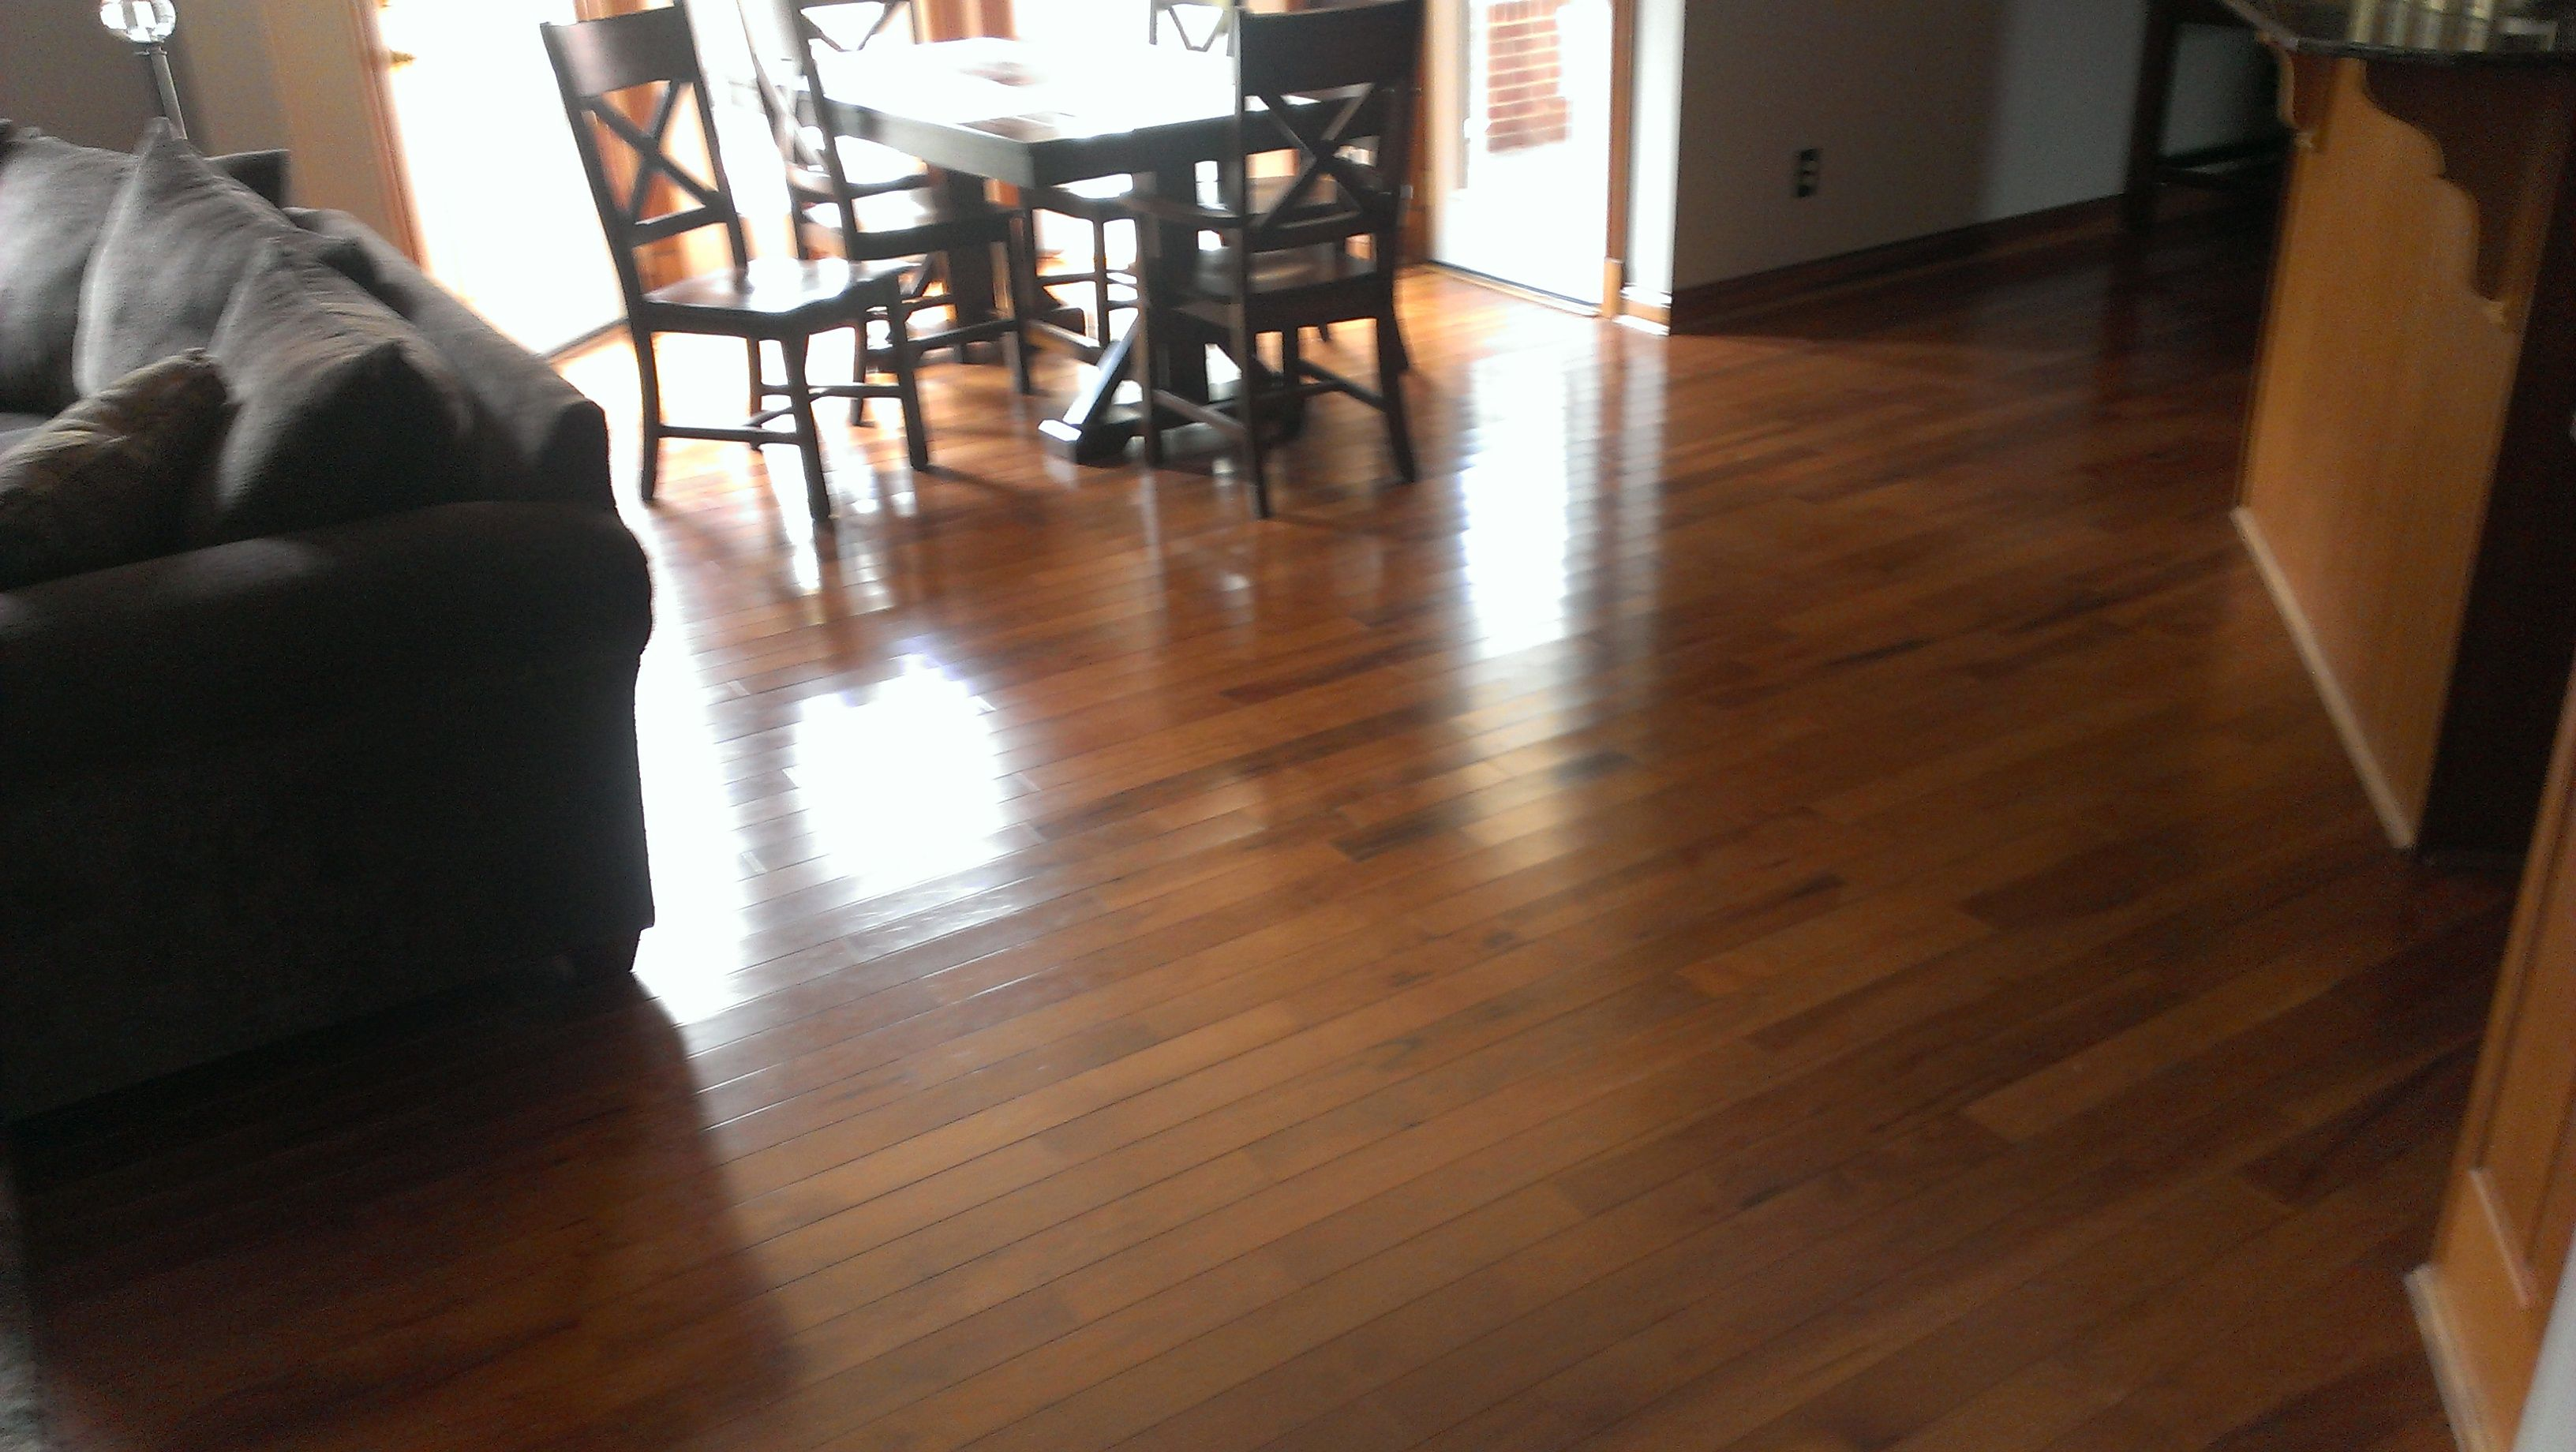 Beautiful somerset hardwood flooring installed in loveland ohio style character grade color hickory saddle home based carpet flooring installed nearly